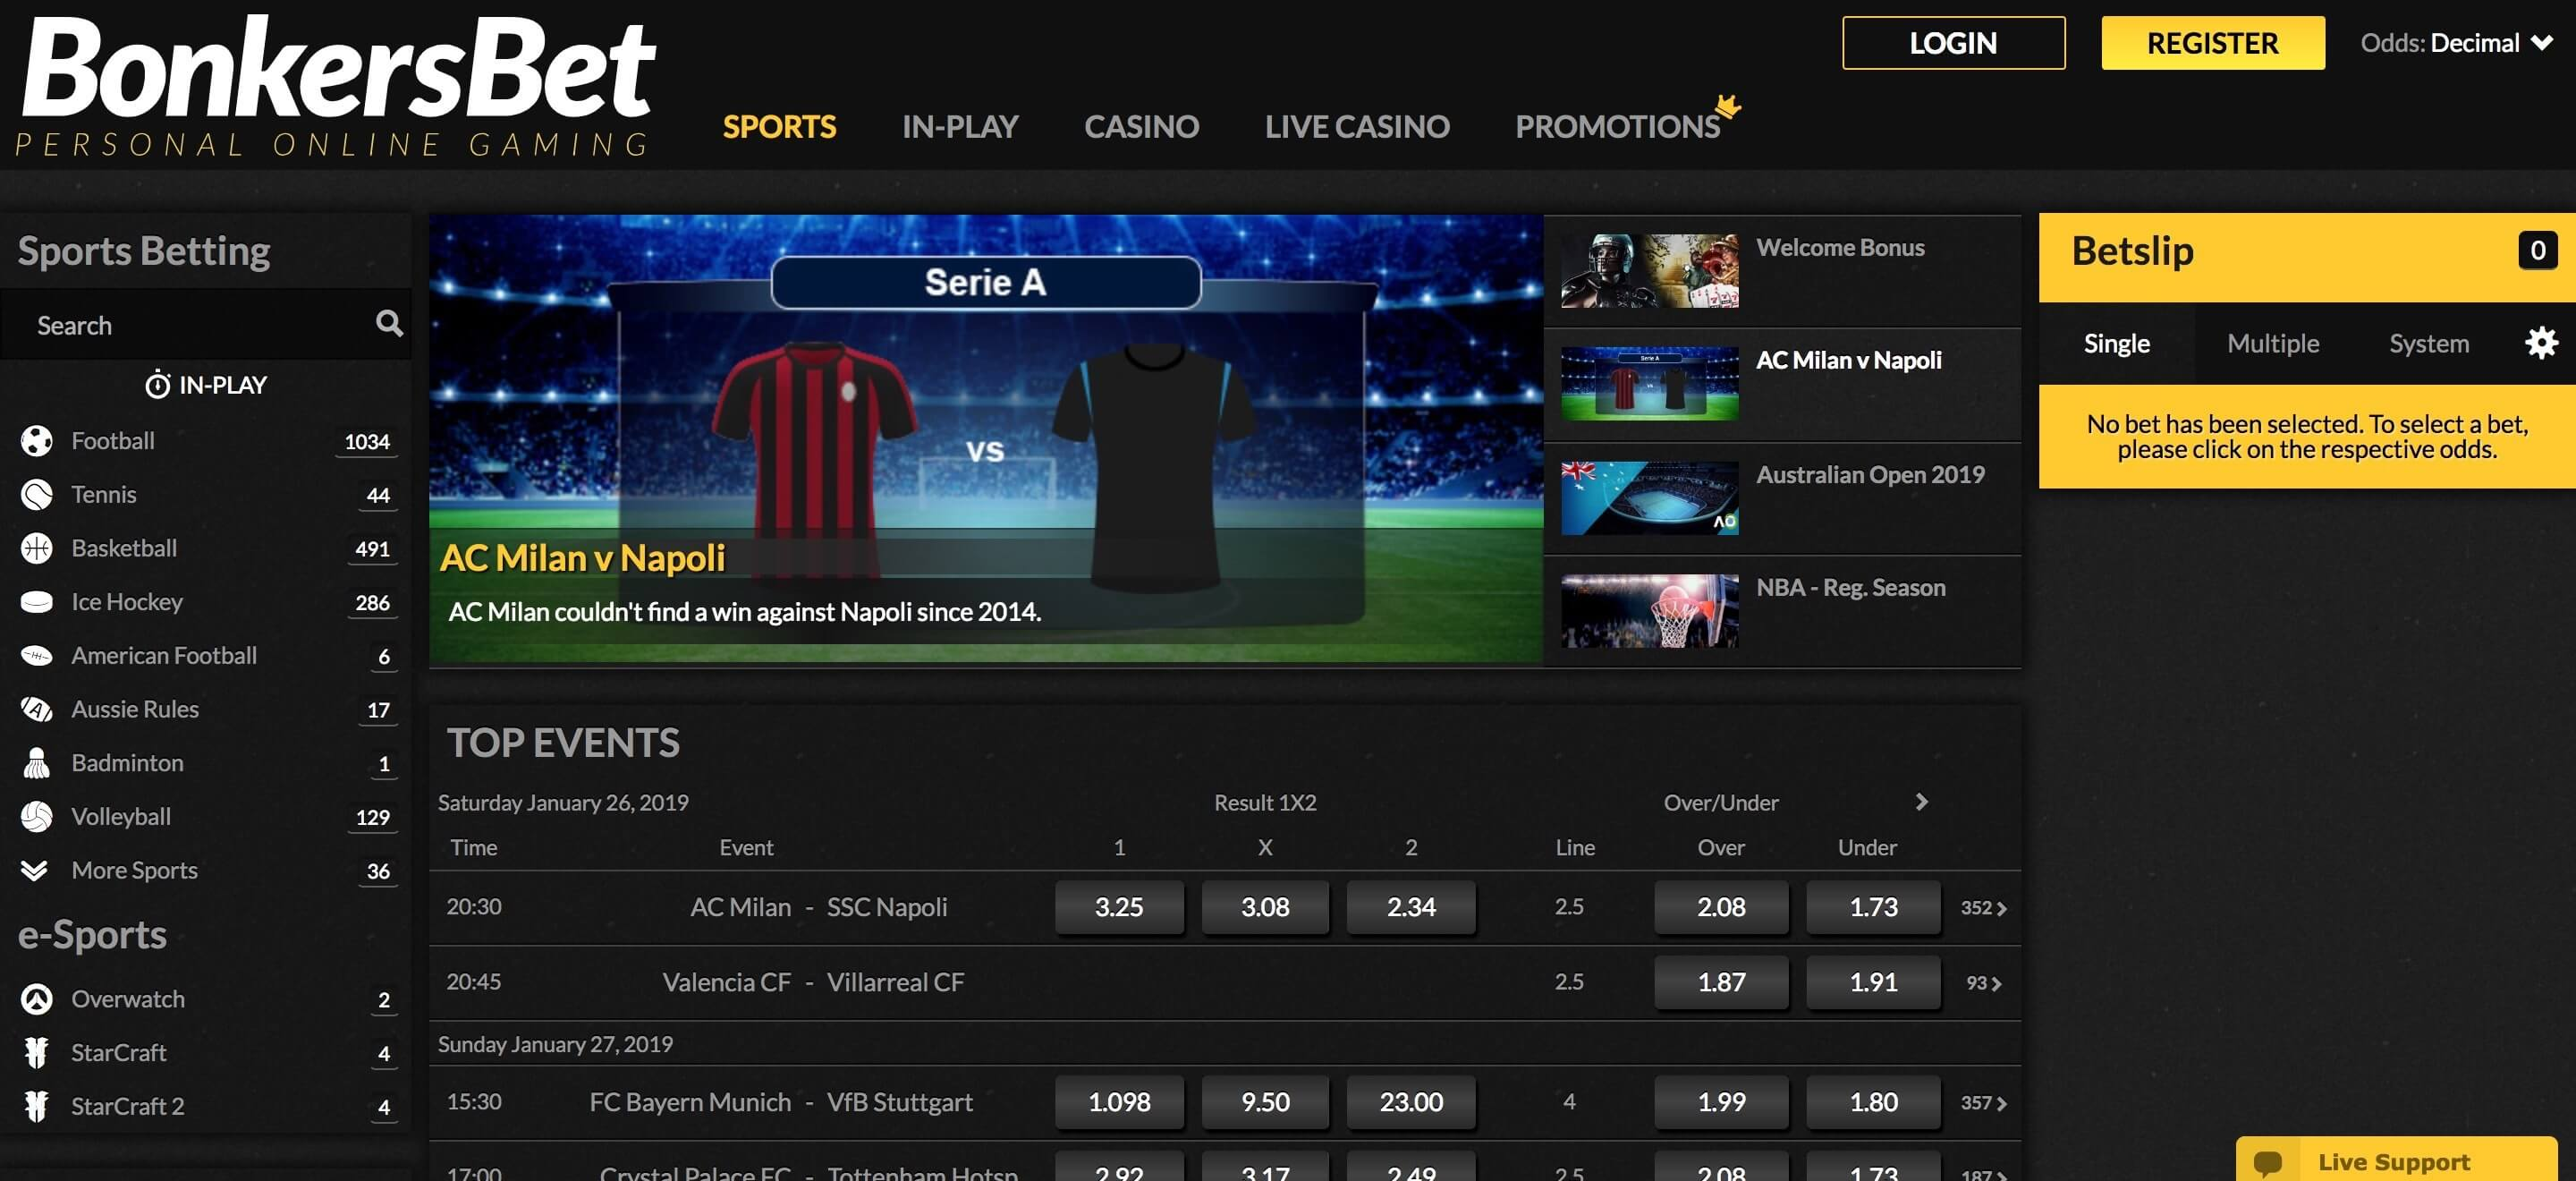 BonkersBet Screenshot